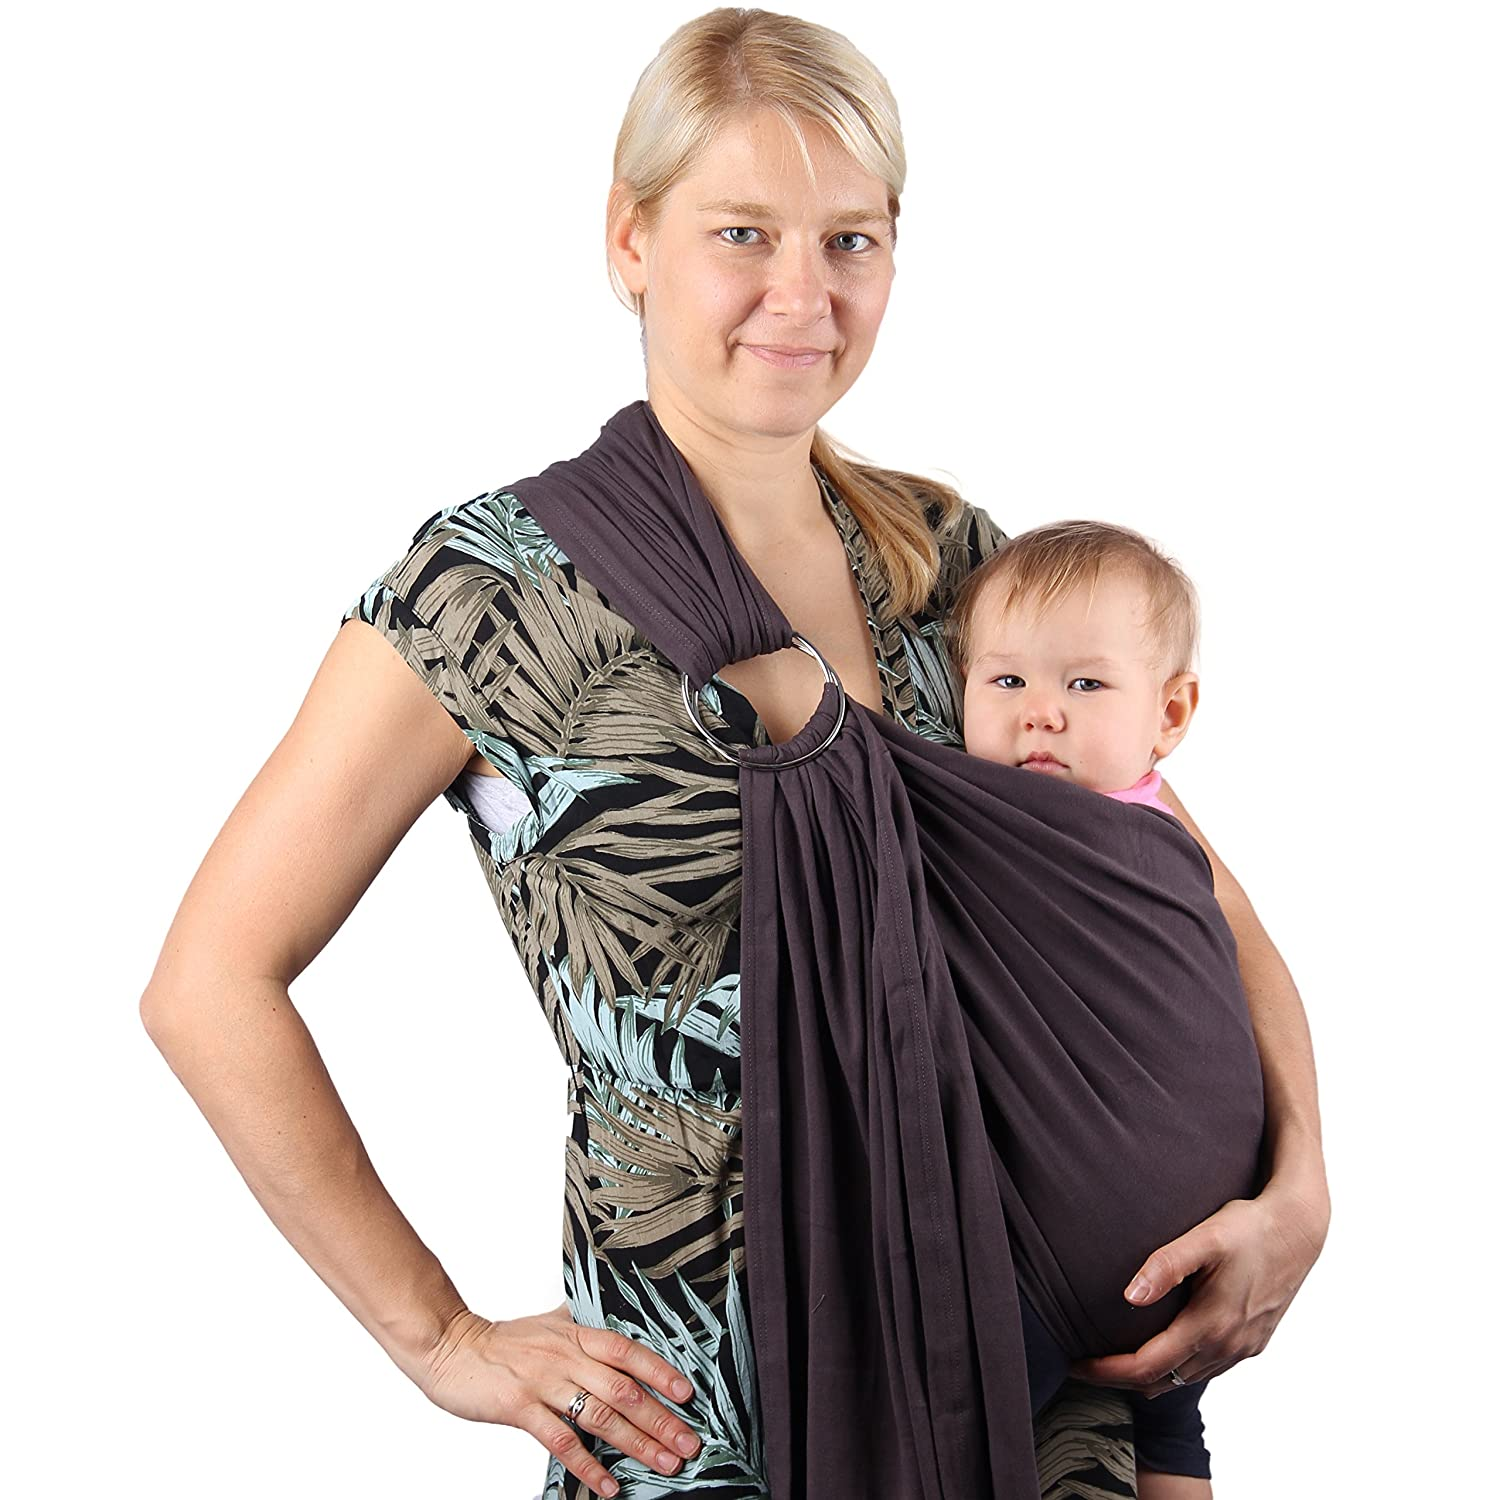 Neotech Care Baby Sling Carrier - Cotton - with Rings Adjustment - for Infant, Newborn, Child, Toddler - Beige NTC-BC001 Beige